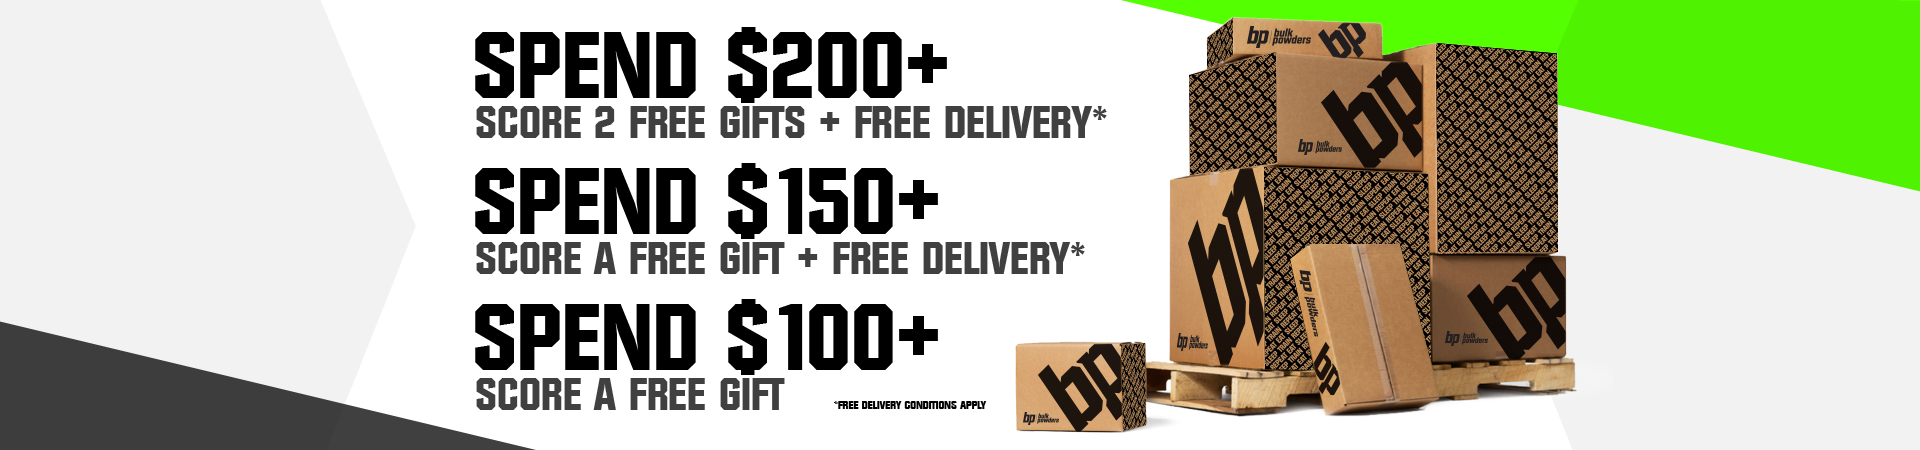 FREE GIFT | FREE DELIVERY